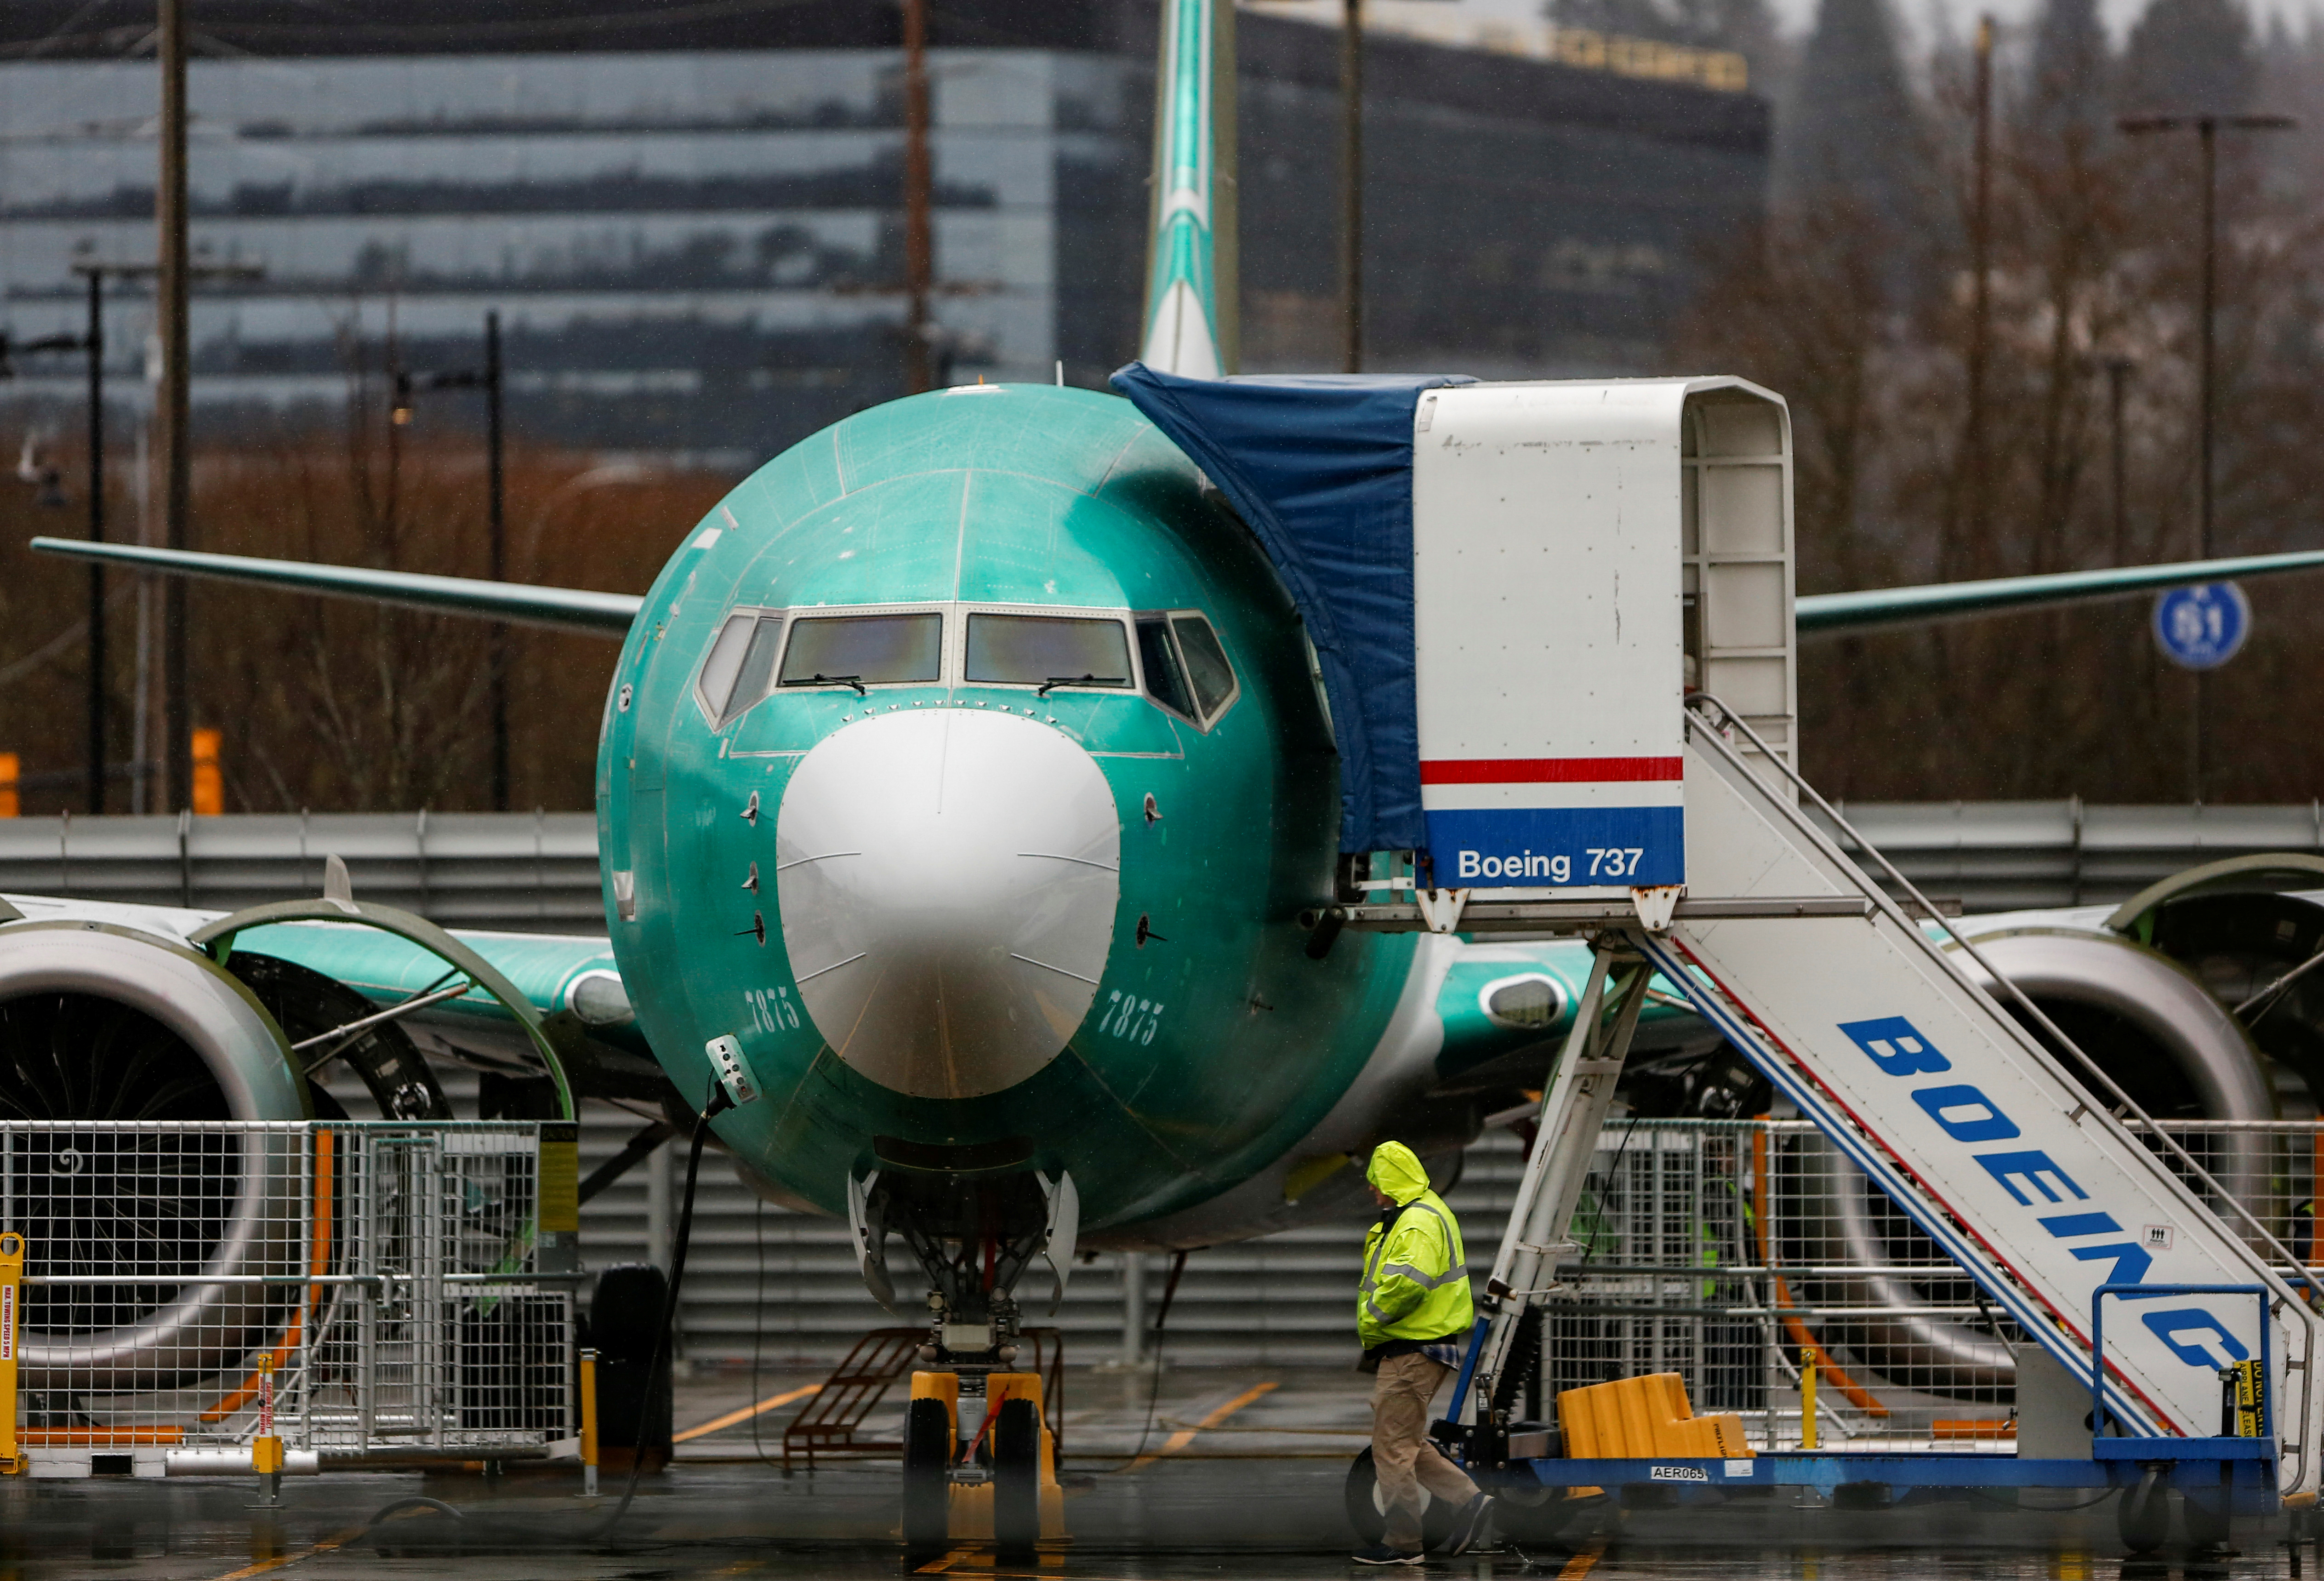 An employee walks past a Boeing 737 Max aircraft seen parked at the Renton Municipal Airport in Renton, Washington, U.S. January 10, 2020. REUTERS/Lindsey Wasson/Files